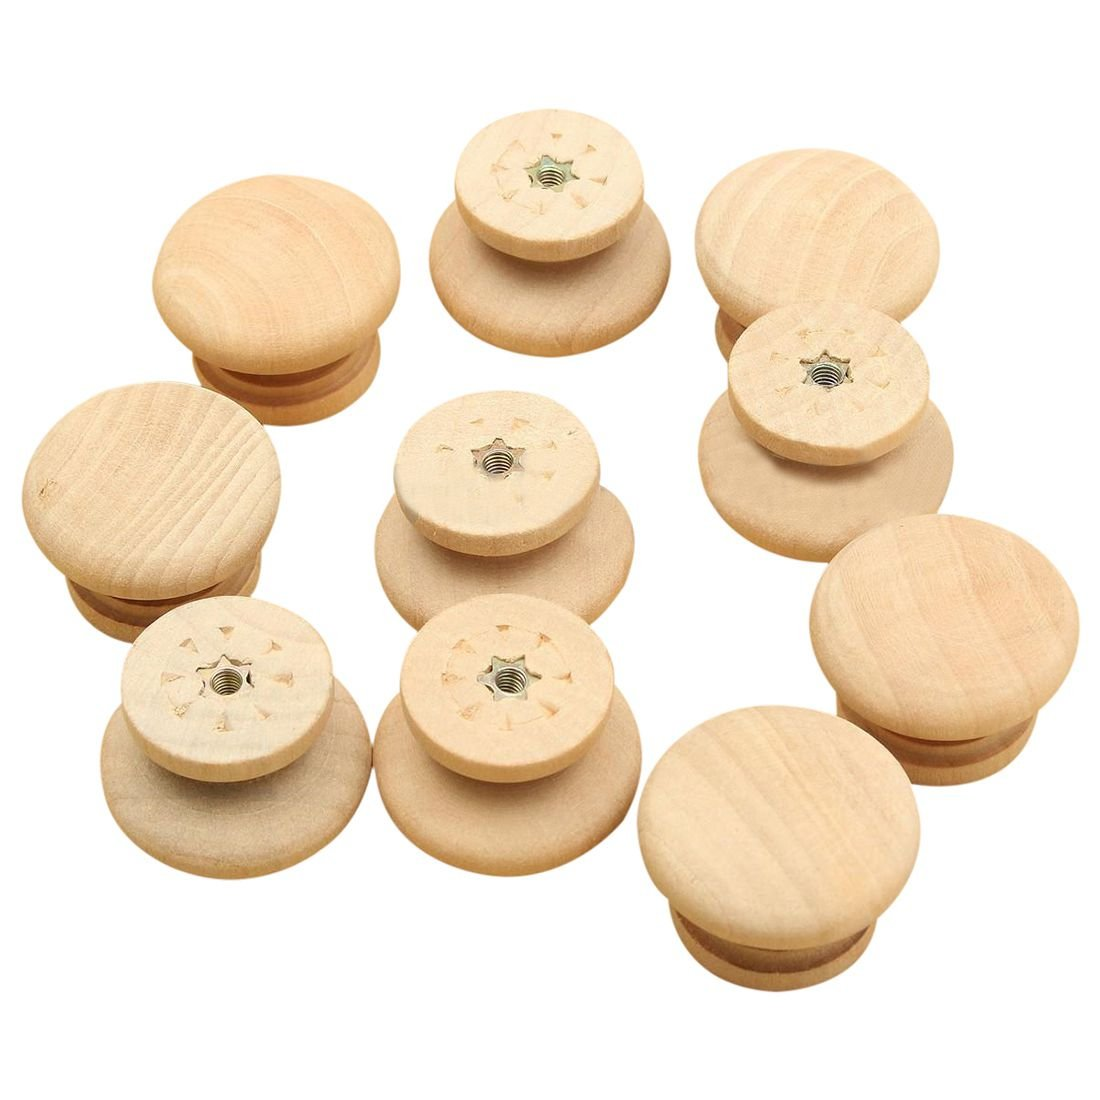 SODIAL(R) 10pcs 35mm Natural Wood Wooden Drawer Wardrobe Door Cabinet Knob Pull With Screw